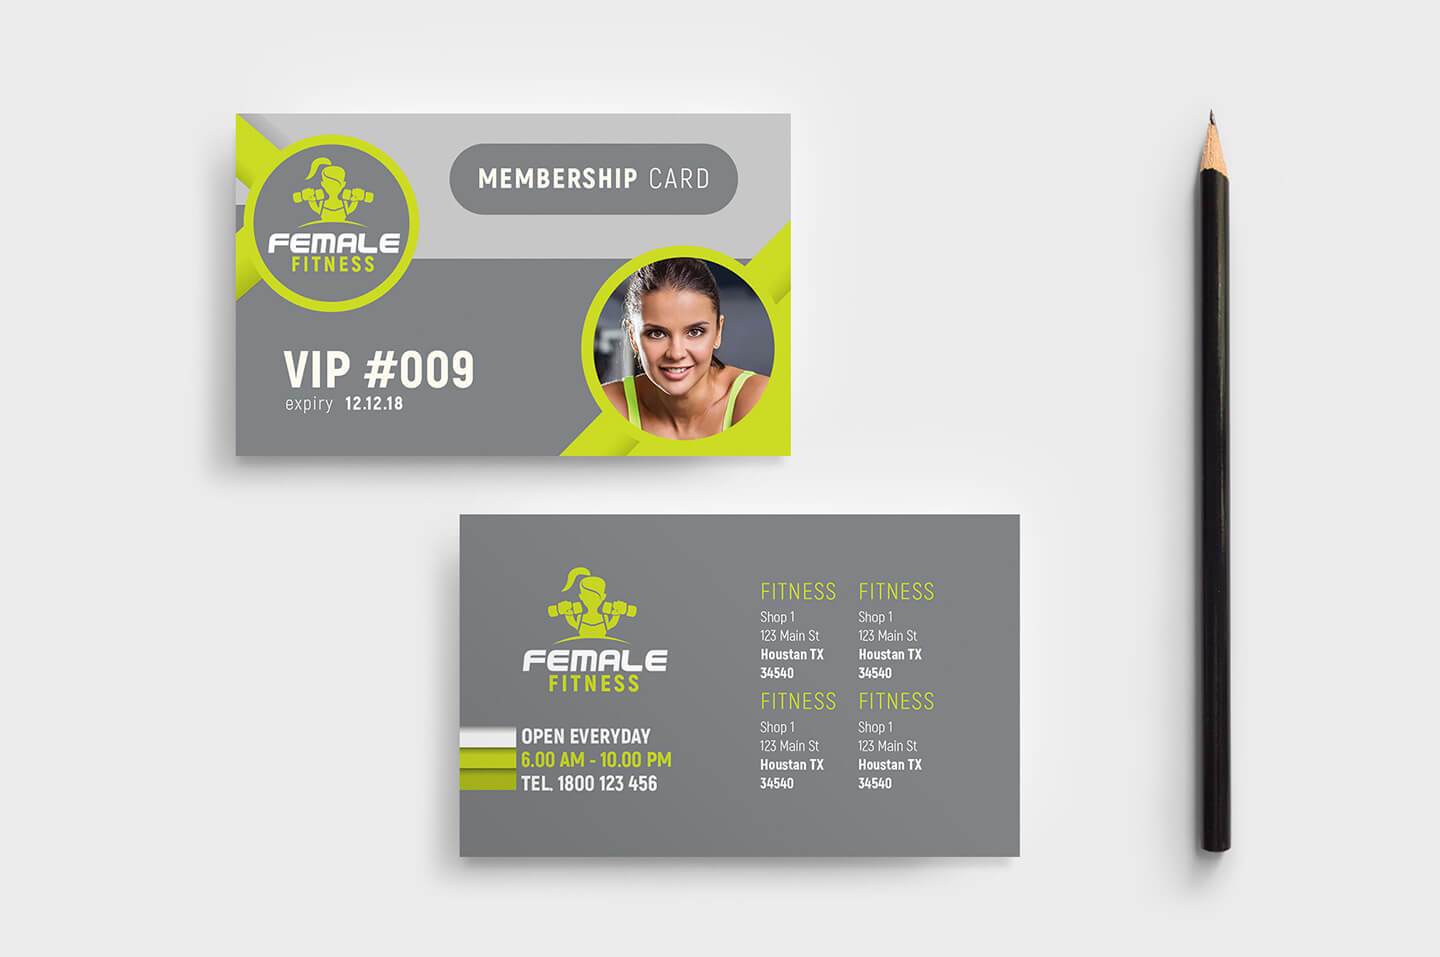 Female Fitness Membership Card Template In Psd, Ai & Vector Regarding Gym Membership Card Template